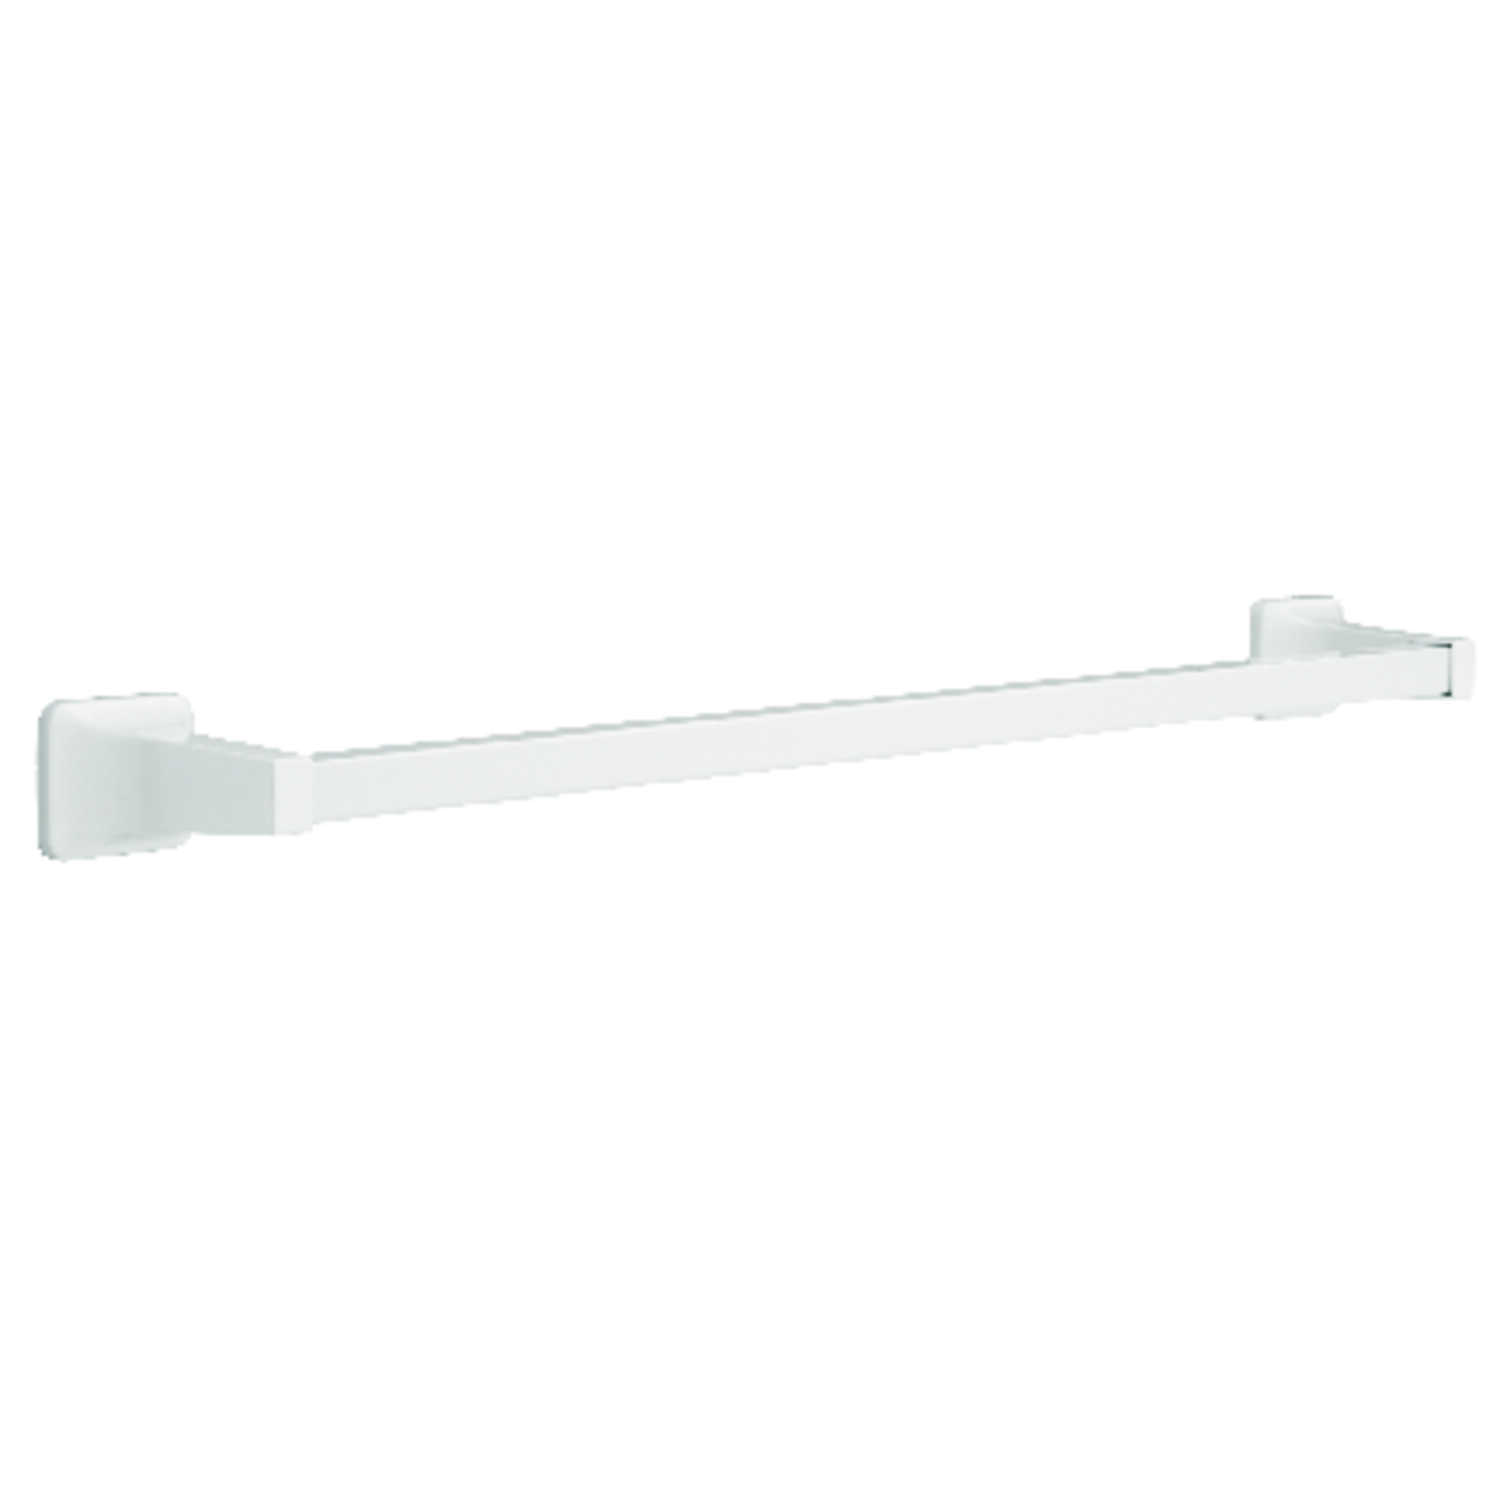 Franklin Brass  Futura  White  Towel Bar  26.24 in. L Die Cast Zinc